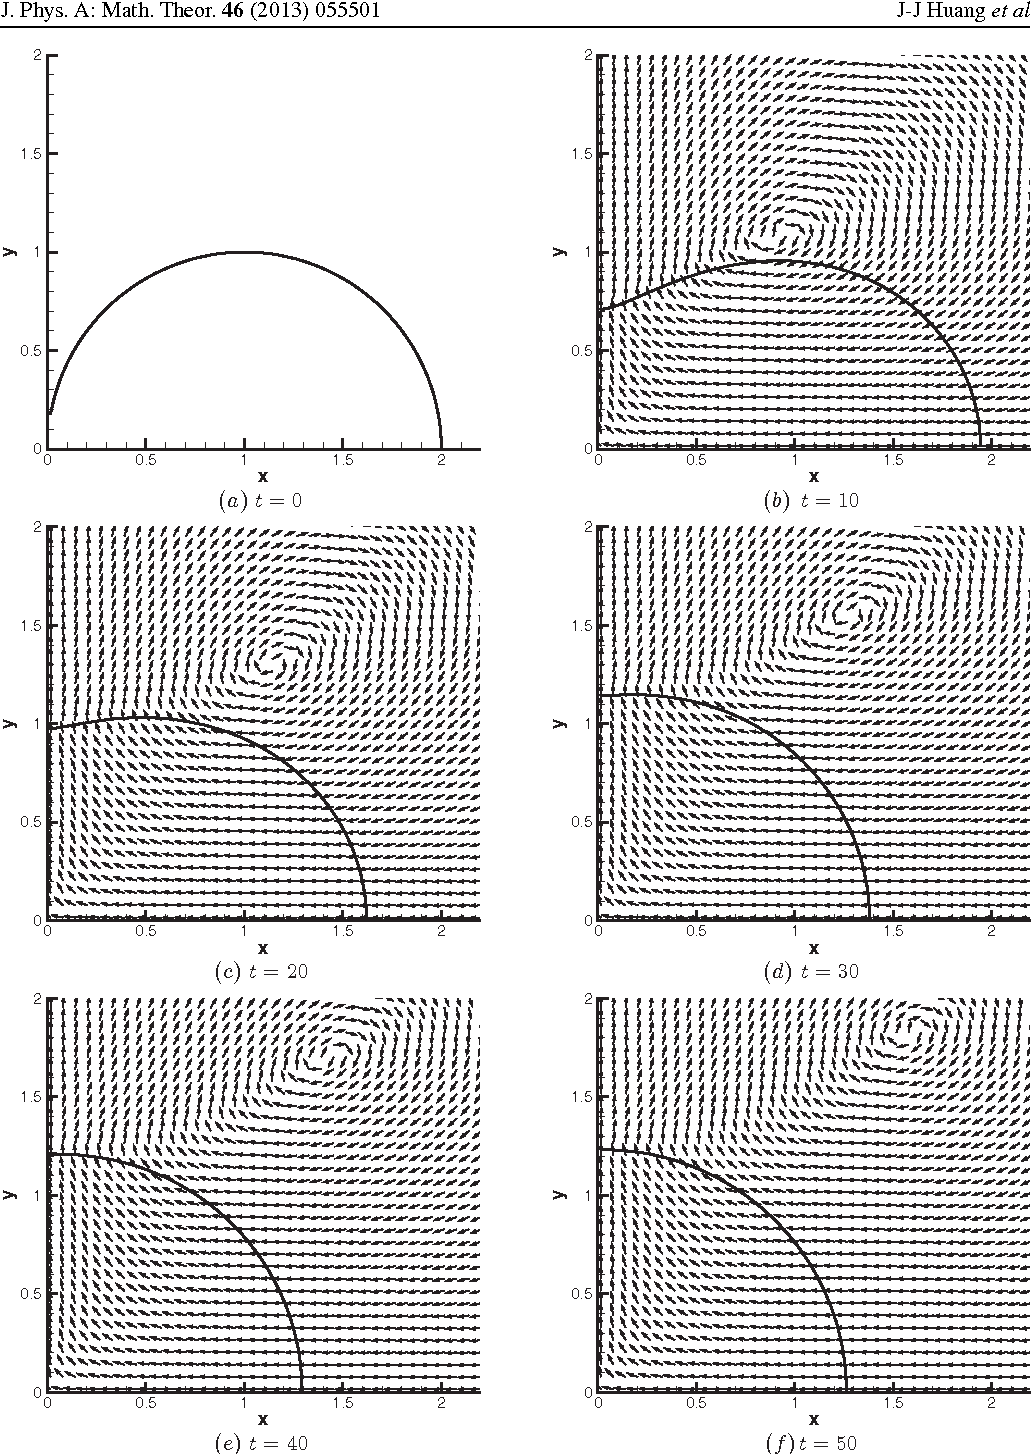 Figure 6. Snapshots of the interface and velocity field at t = 0, 10, 20, 30, 40, 50 by MRT-LB-FD with Re = 20, Ca = 1, Cn = 0.1, Pe = 5 × 103, Nx = 32 and Nt = 256.